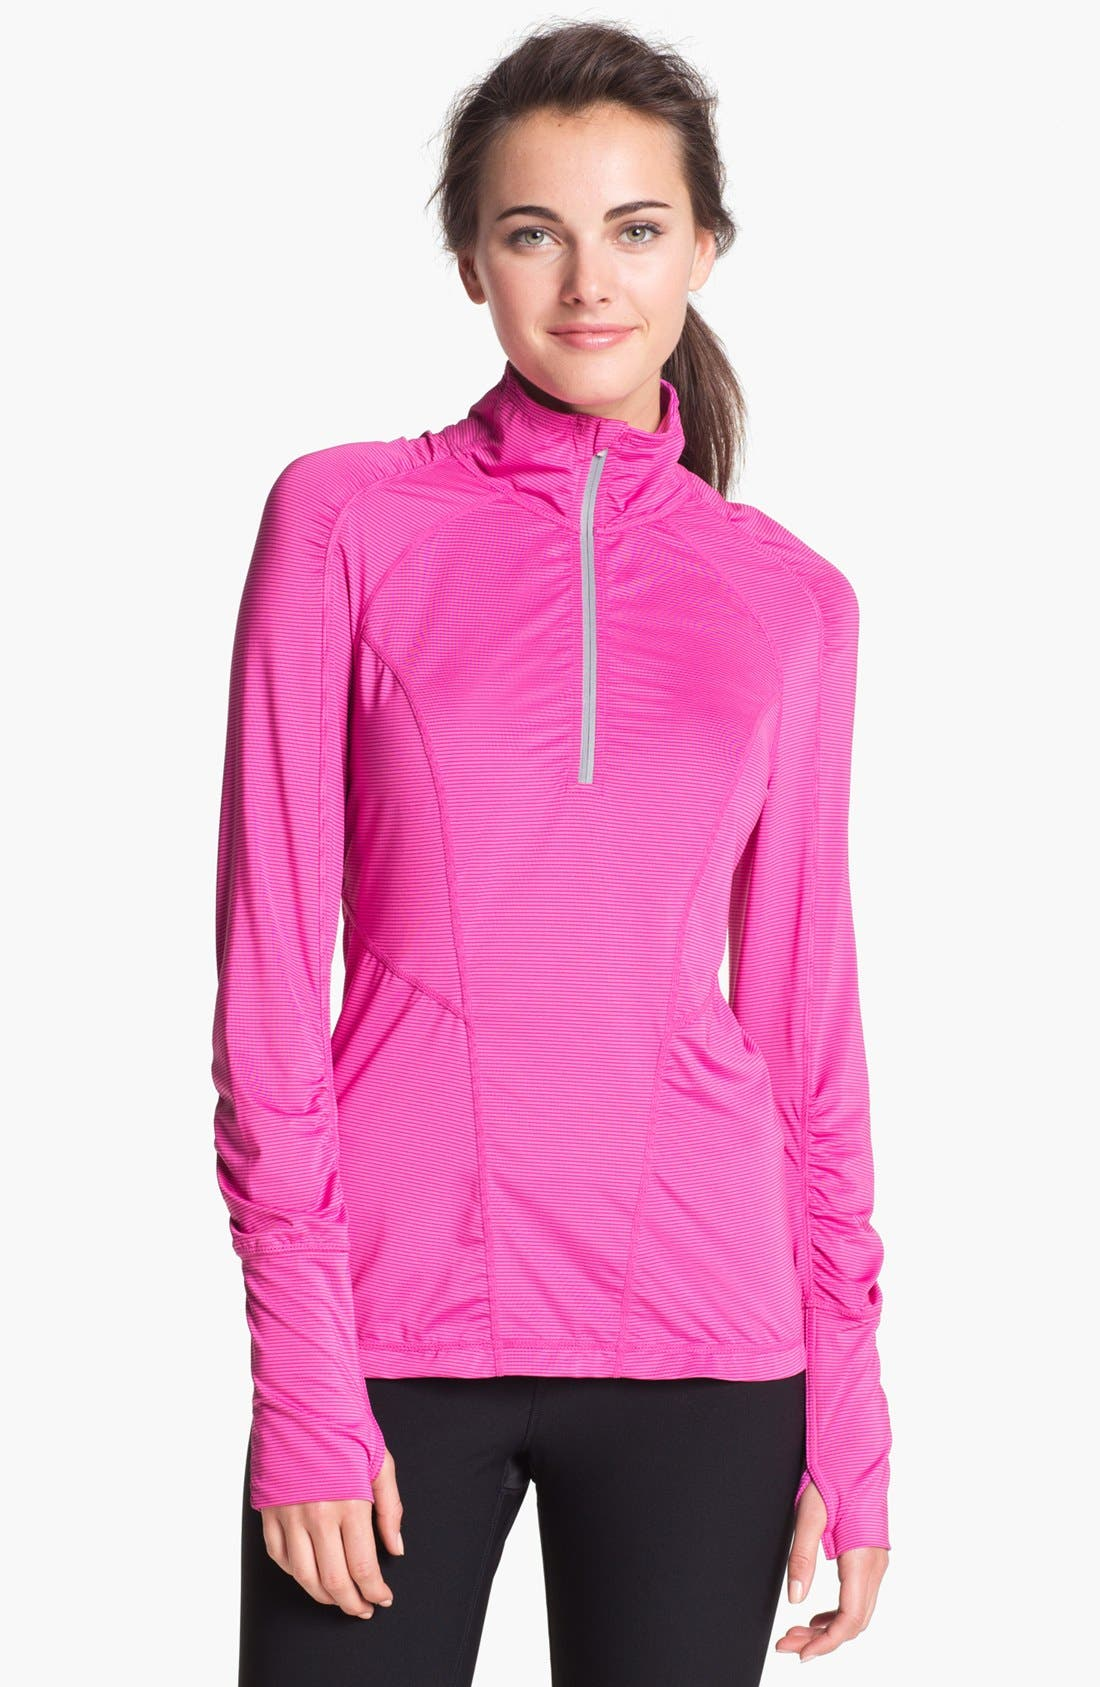 Alternate Image 1 Selected - Zella 'Ruched Runner' Stripe Half Zip Running Top